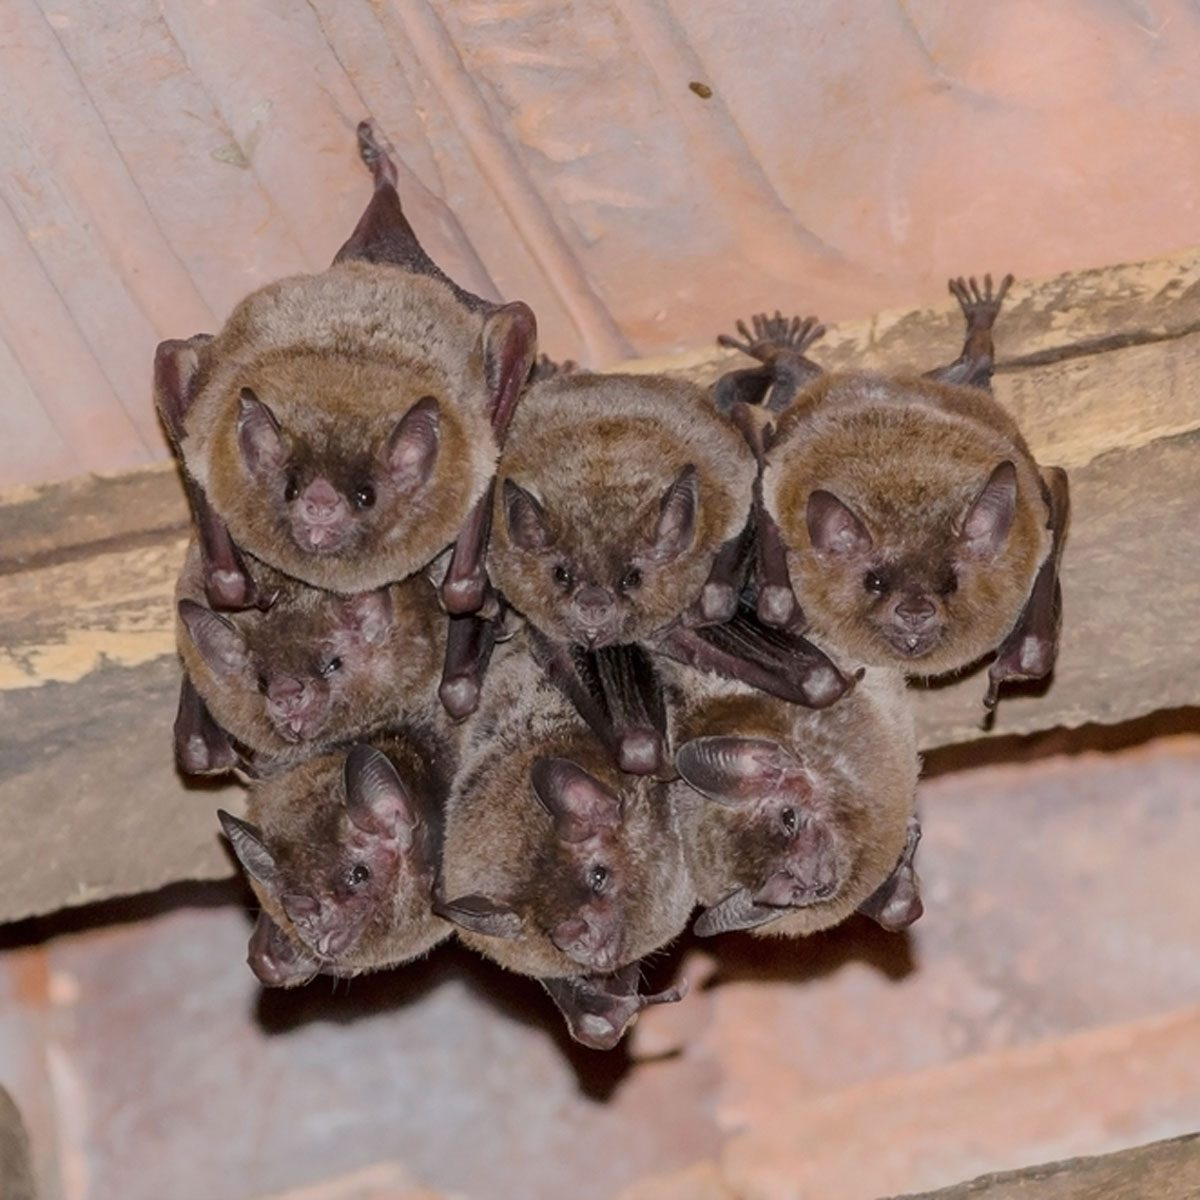 How To Prevent A Bat Problem The Family Handyman